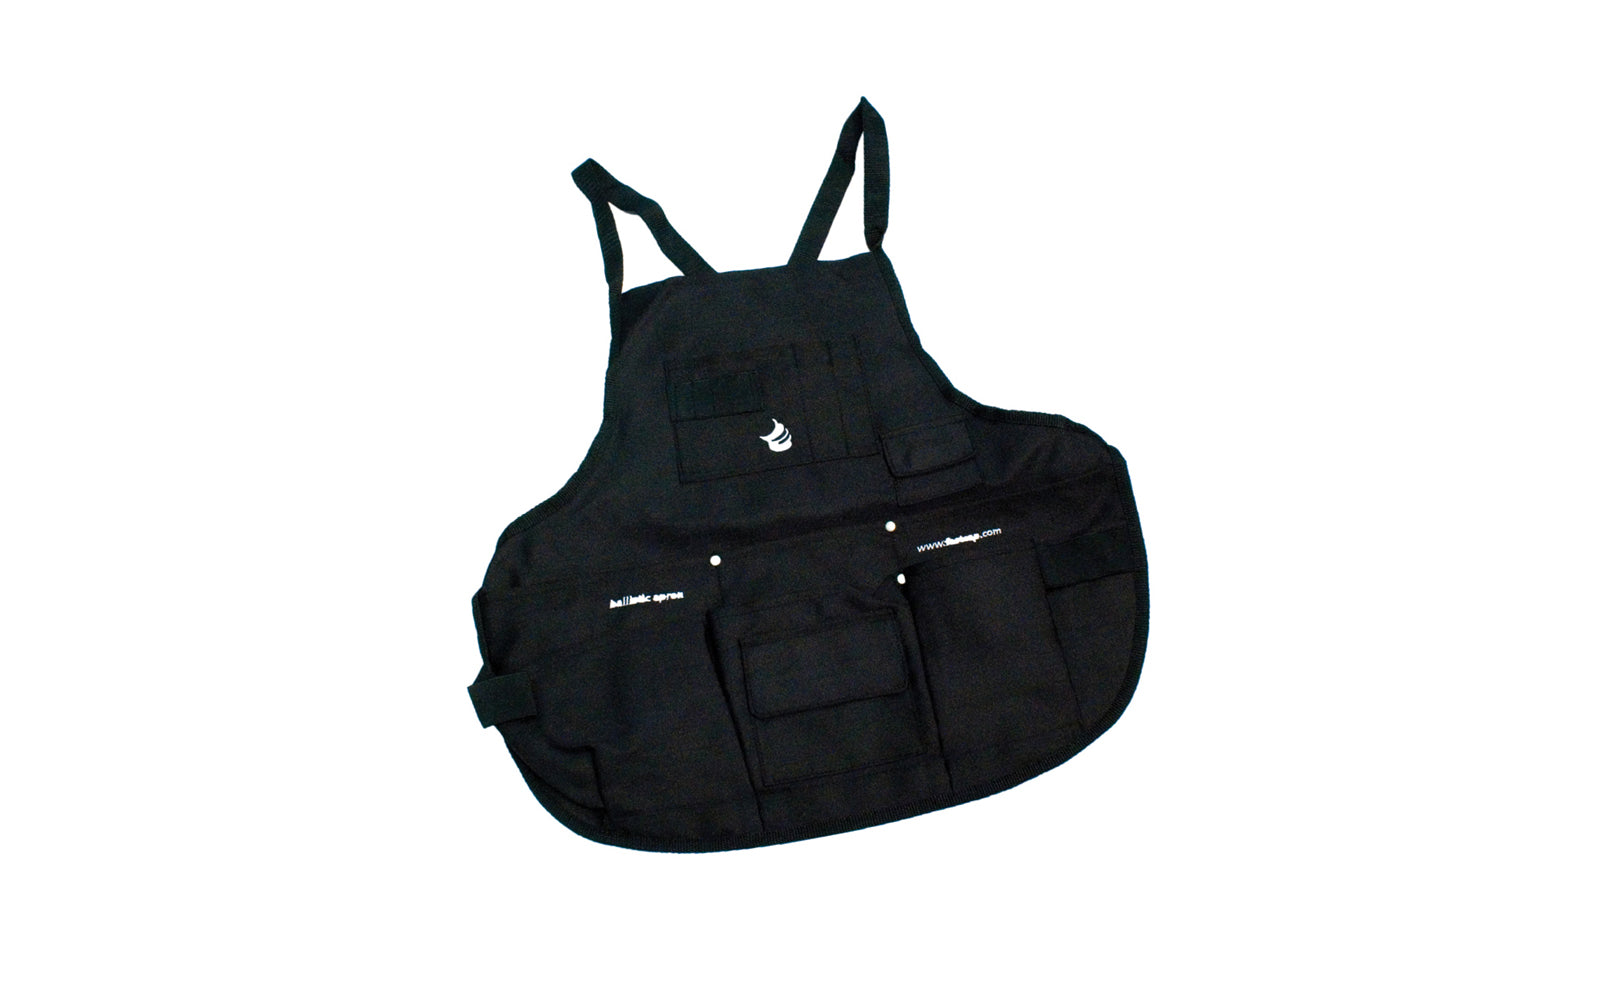 FastCap Ballistic Apron ~ Black - Model No. BALLISTIC SELF HEAL